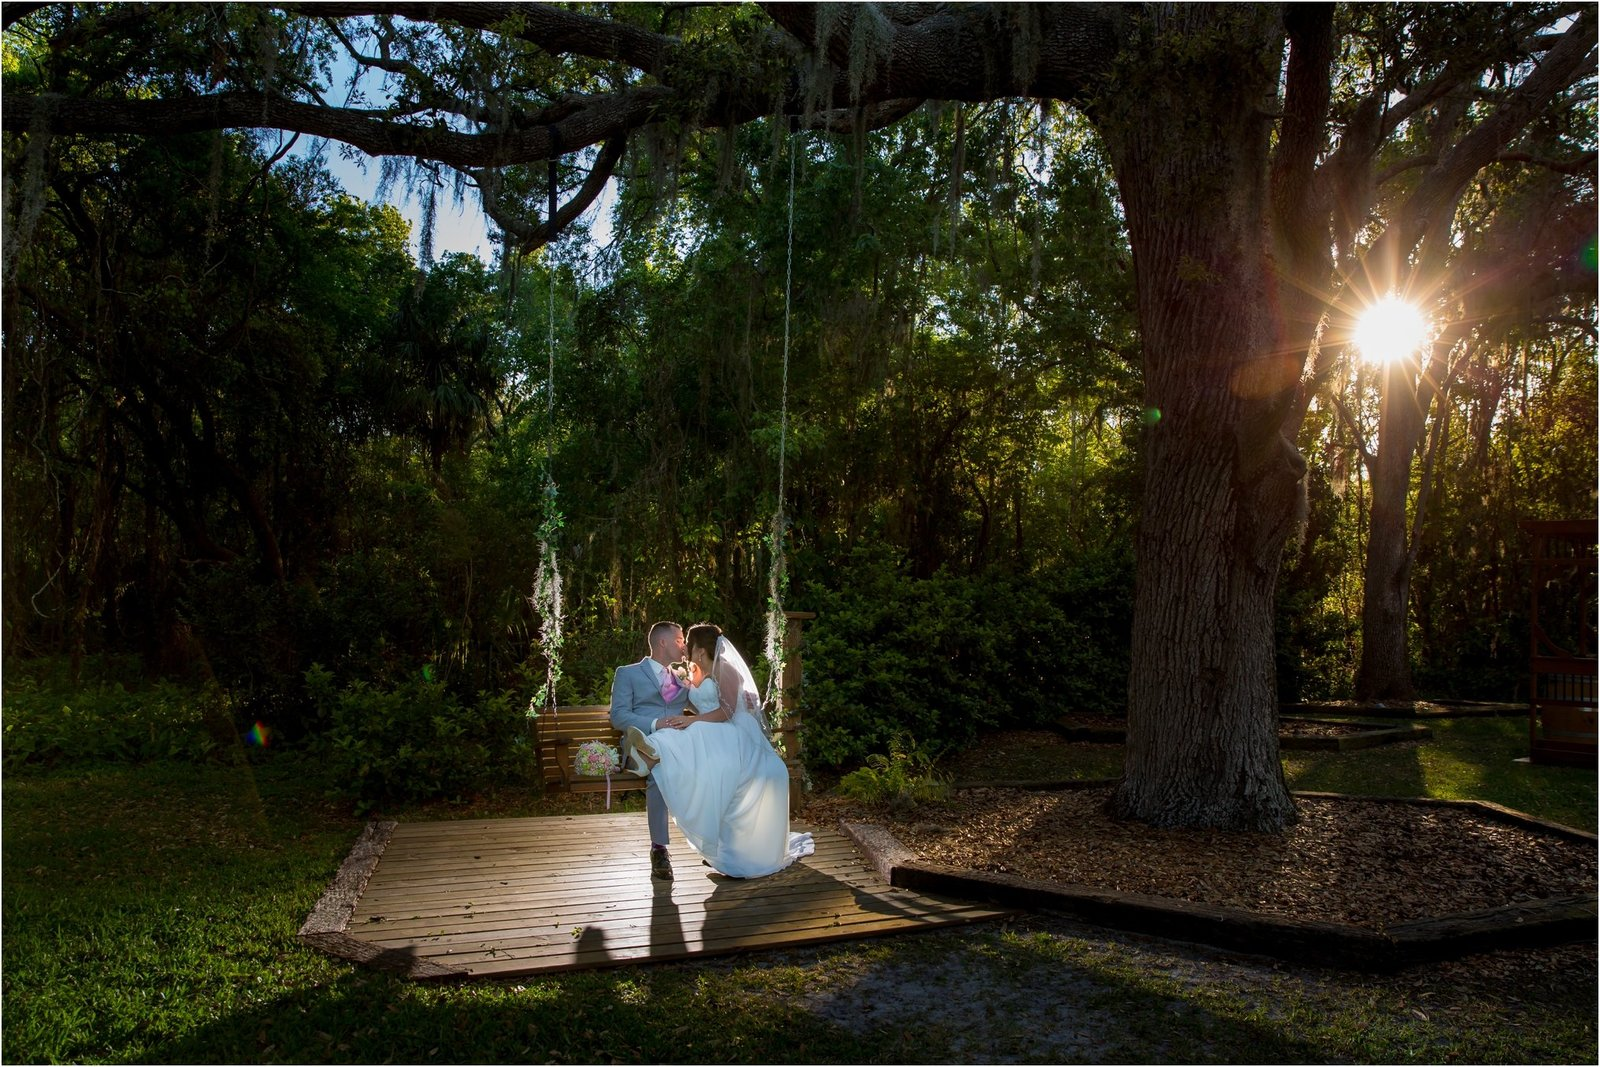 Bakers Ranch Wedding Photography of bride and groom on the swing under the live oak trees with sun peeking between the trees